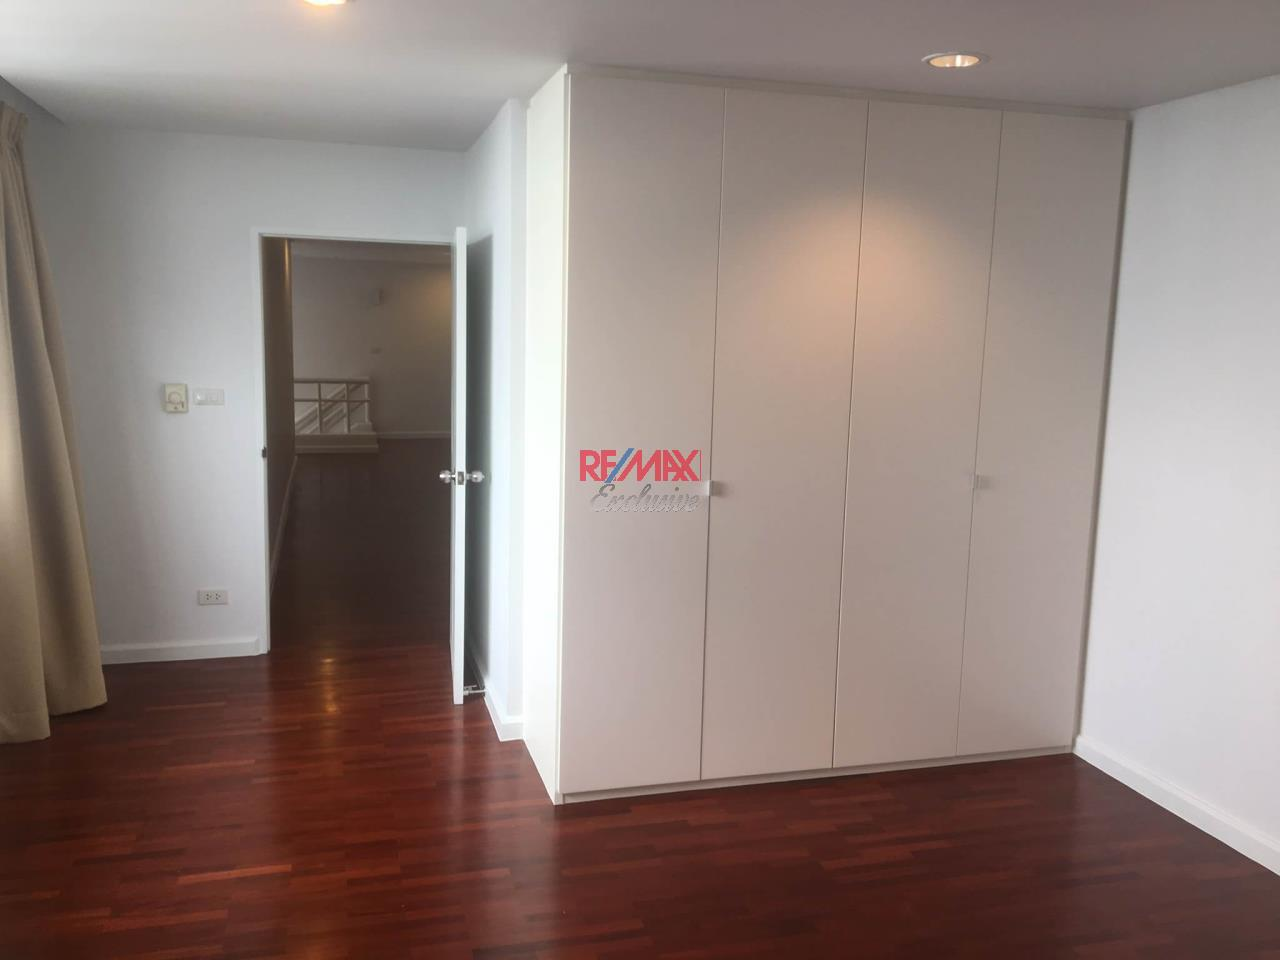 RE/MAX Exclusive Agency's Duplex Penthouse 3 Bedroom for Sale 36M 19